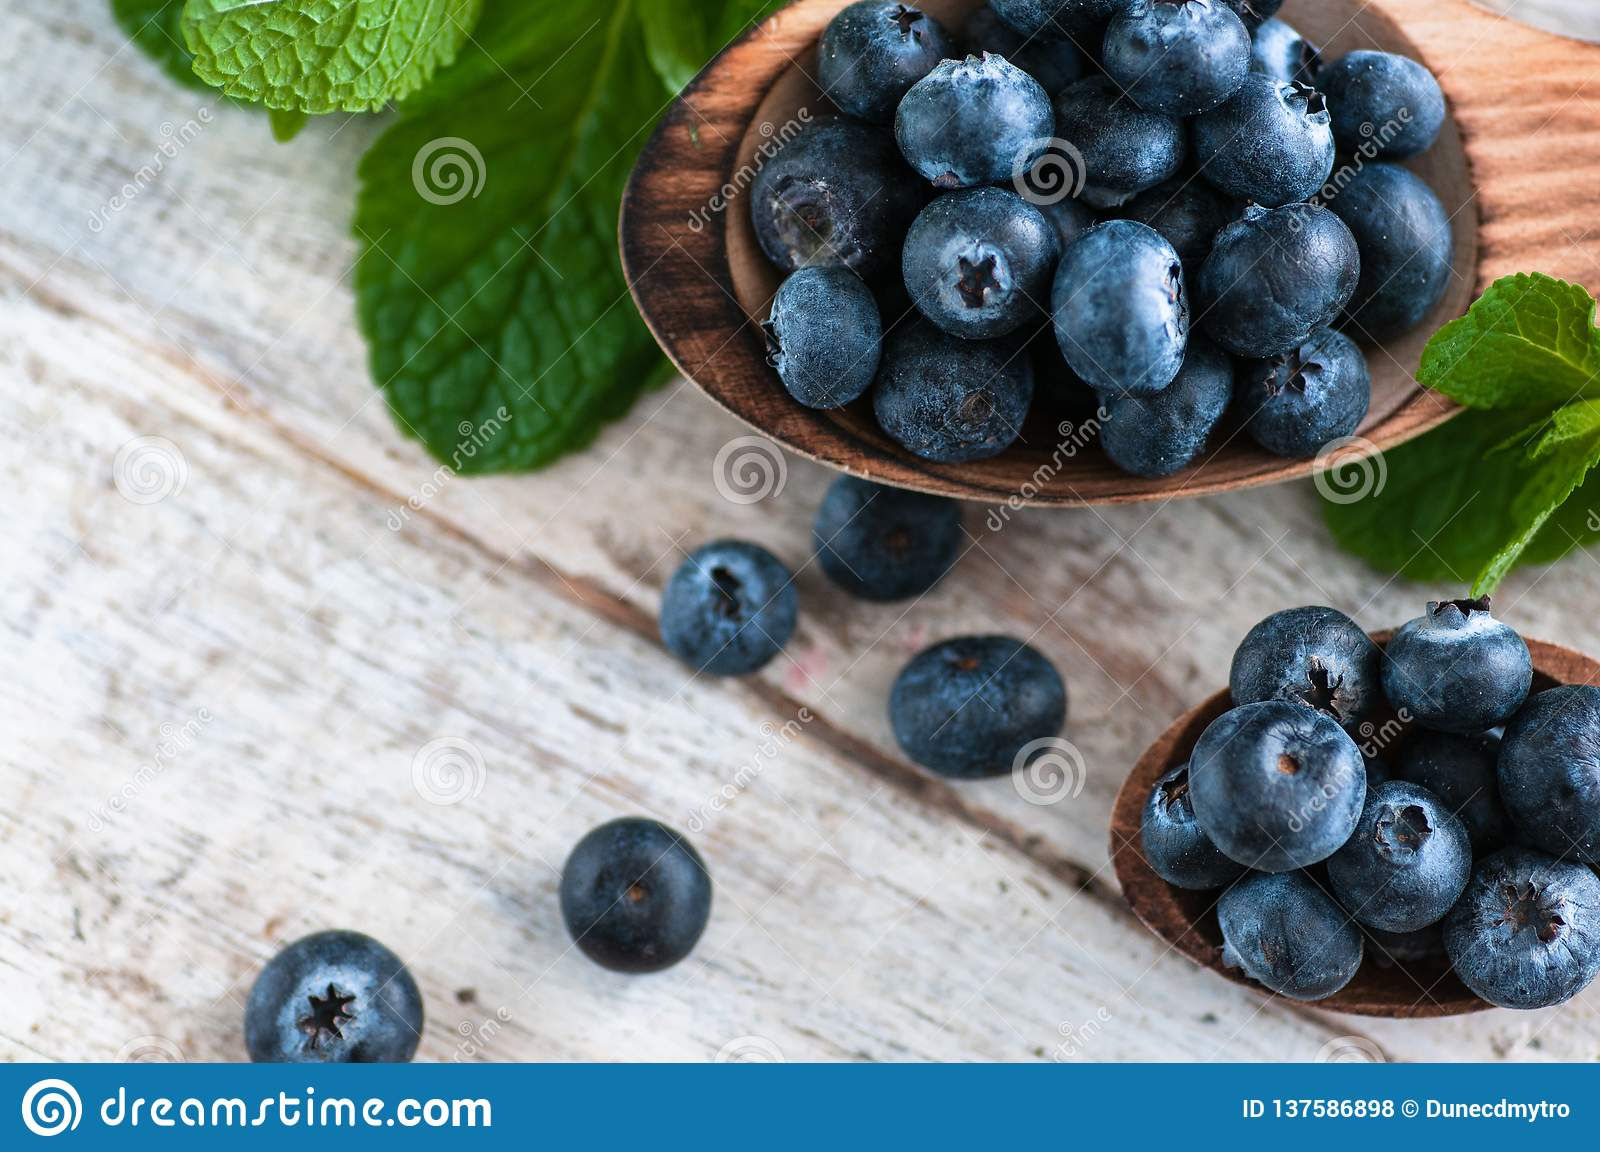 Blueberries and various forest fruits, raspberries, strawberries. There are different types of wood on the table.